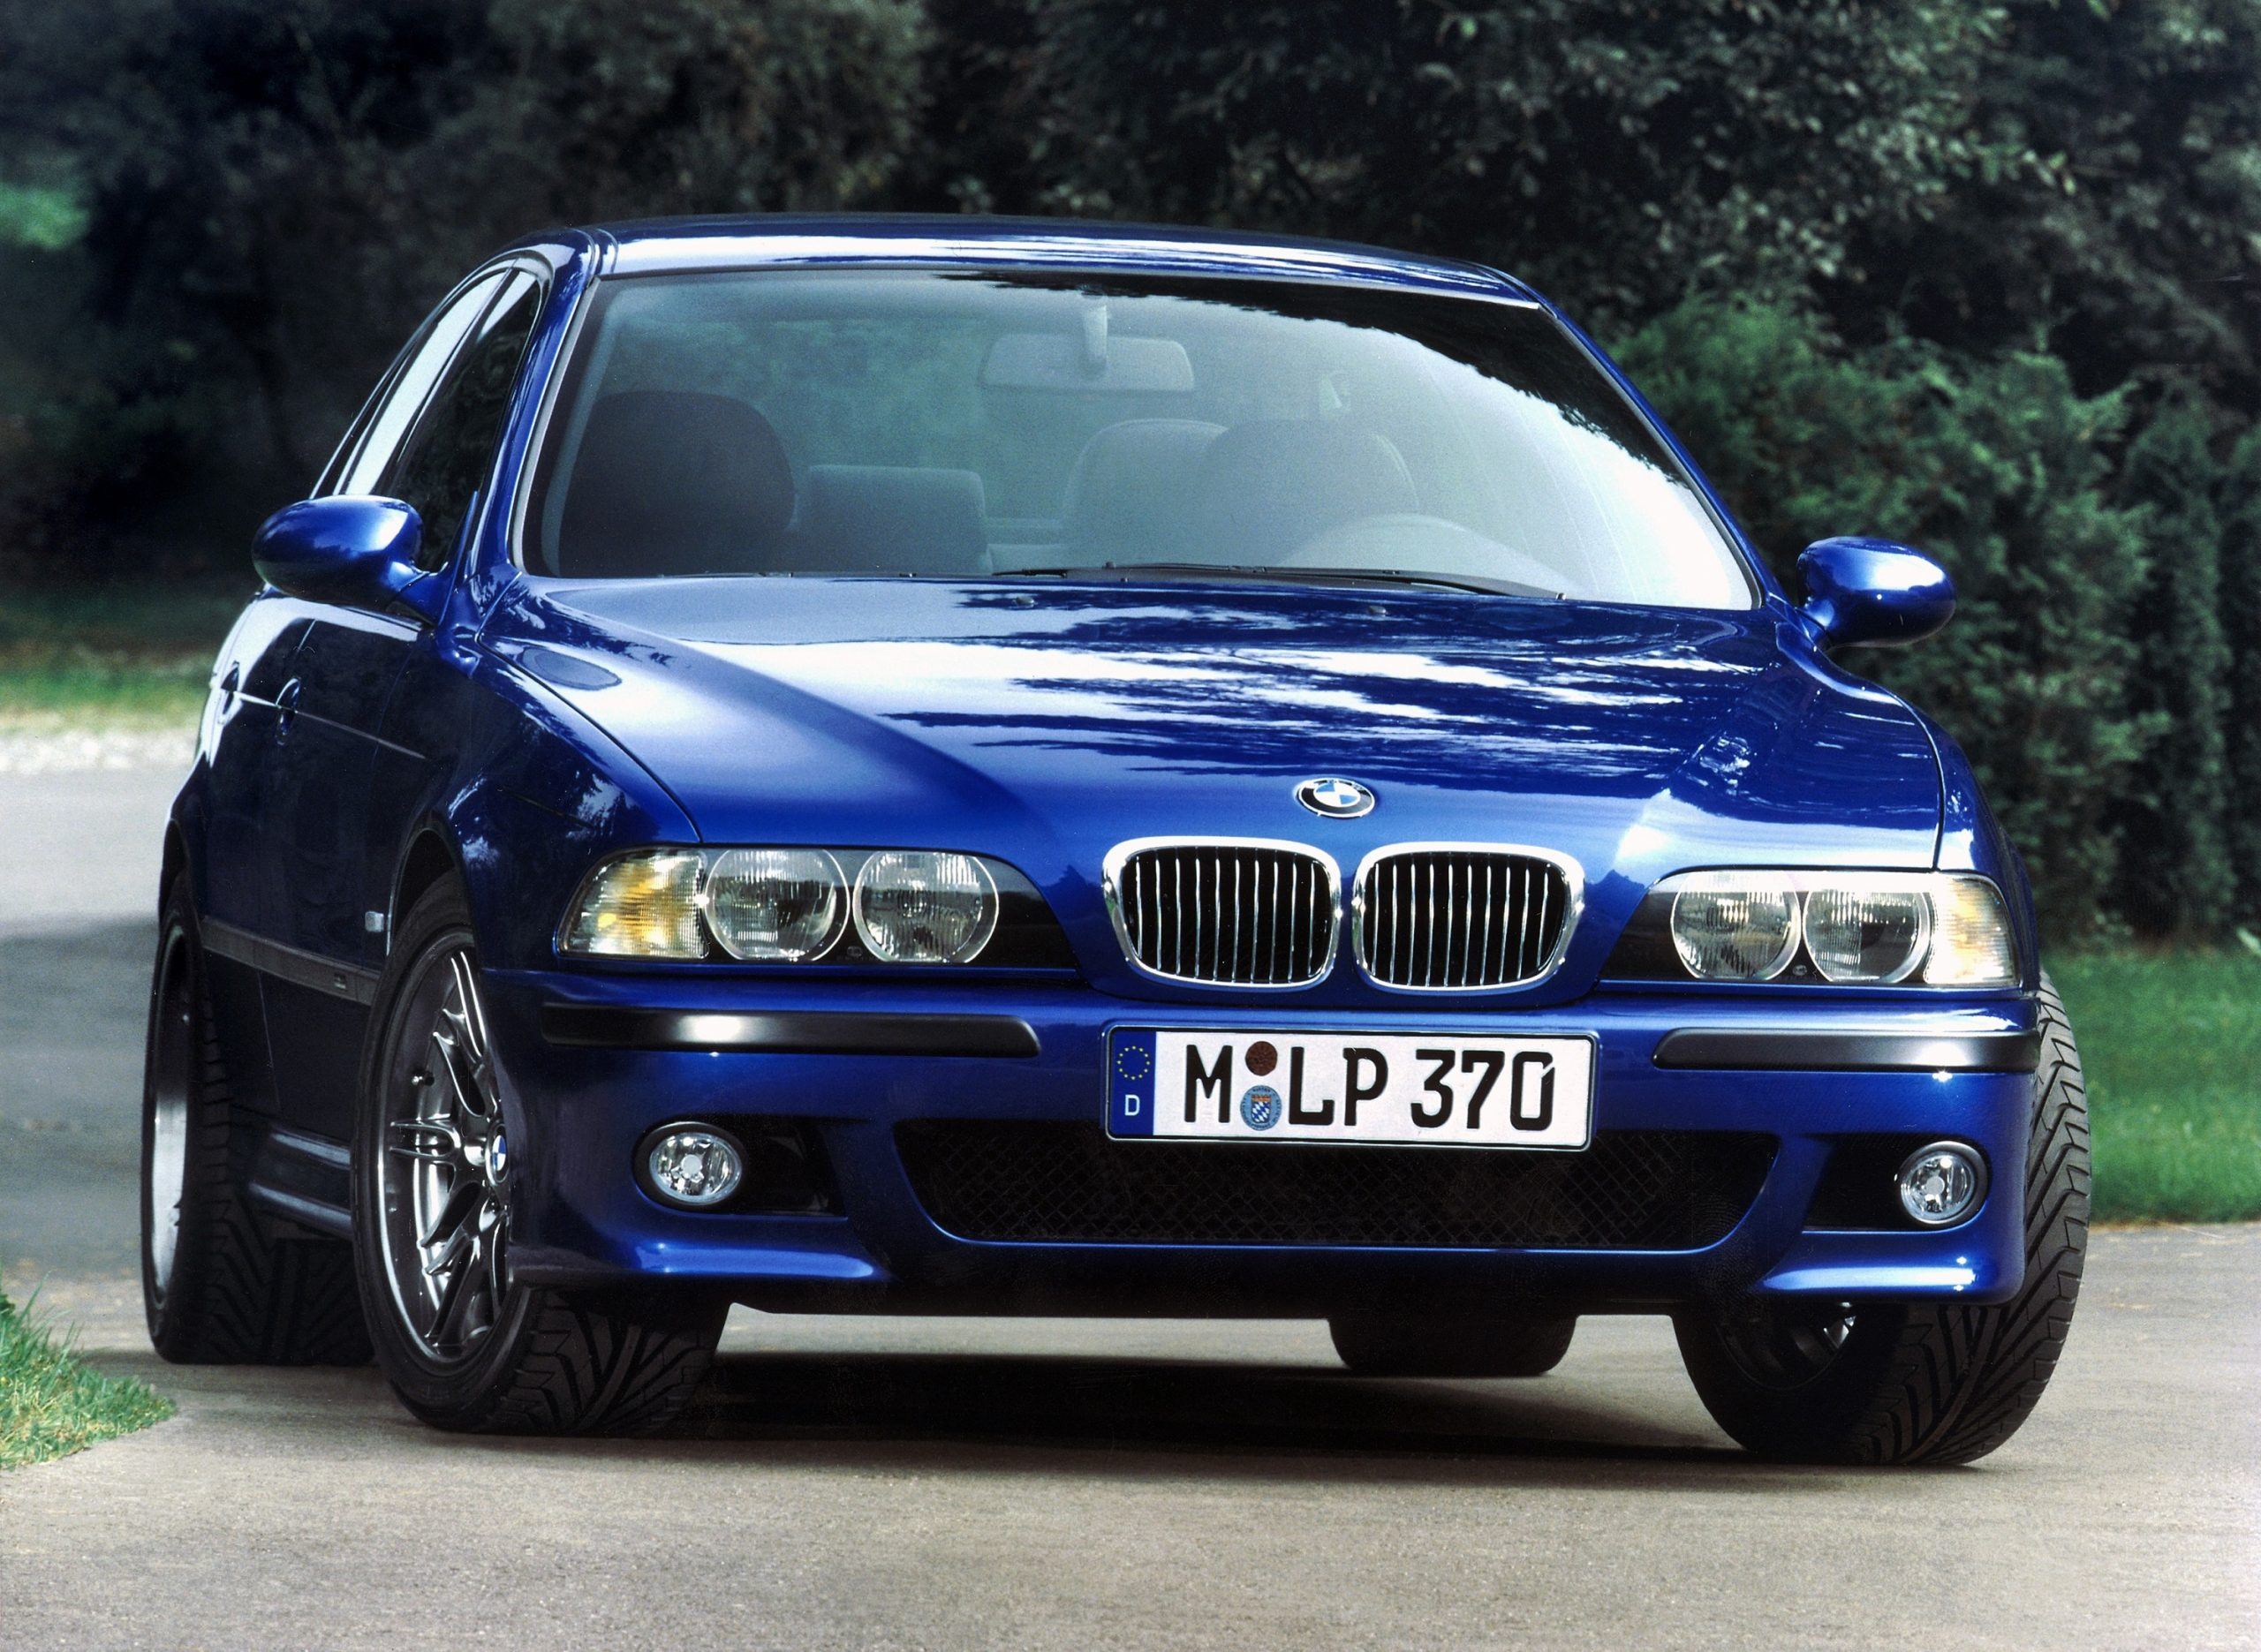 A blue E39 BMW M5 shot from the font 3/4 angle